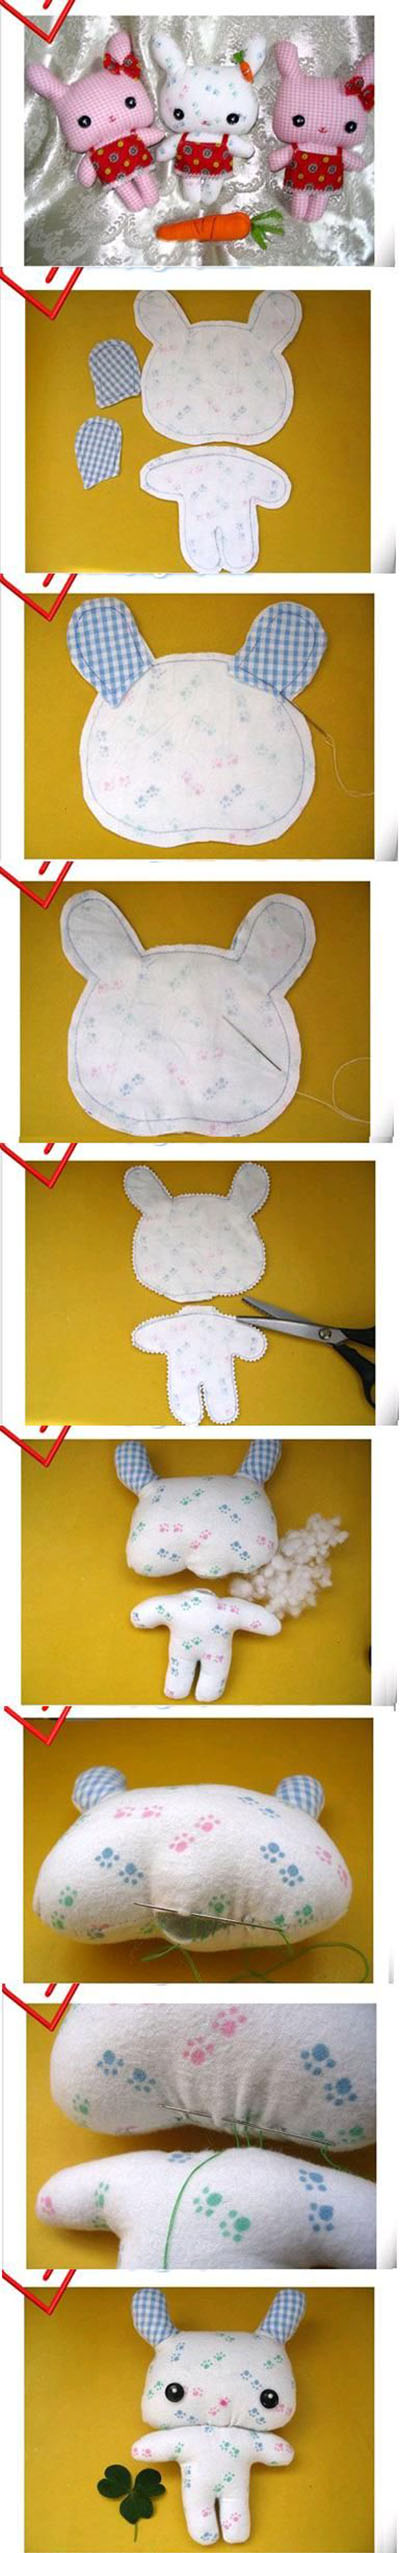 8 DIY Cute Fabric Bunny 1f632f06c3a3